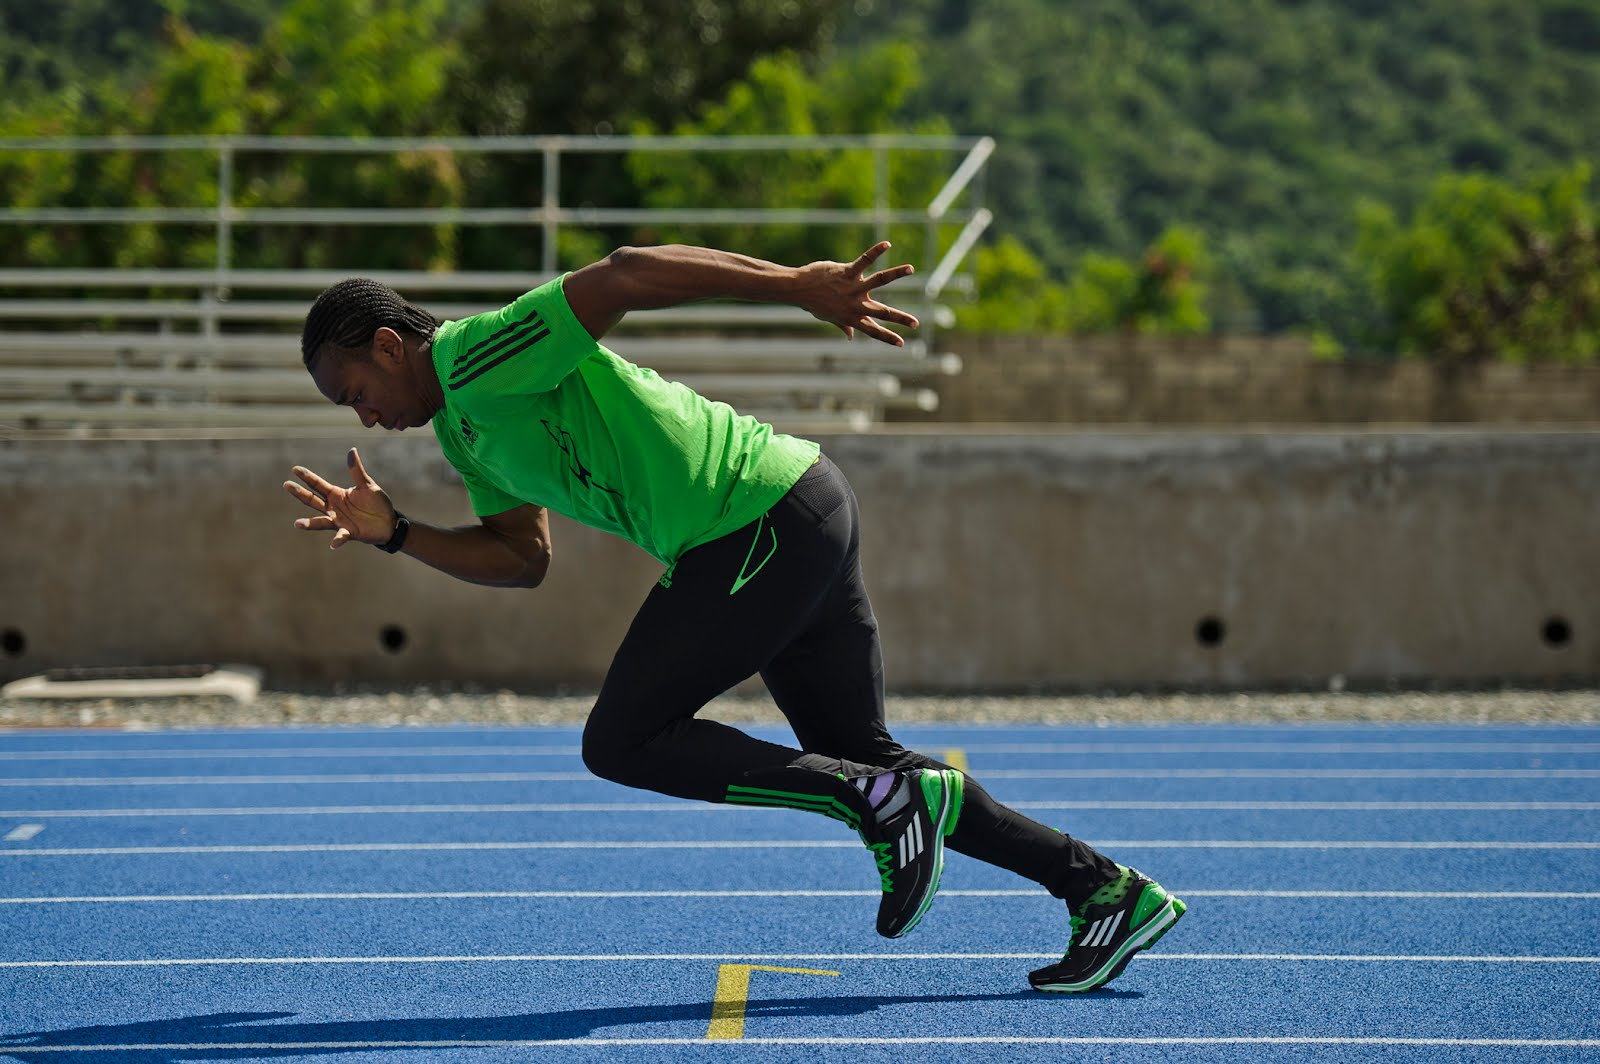 The NonProfit Press: Gold and Silver Medalist Yohan Blake to Lead Food For The Poor's 5K Walk ...